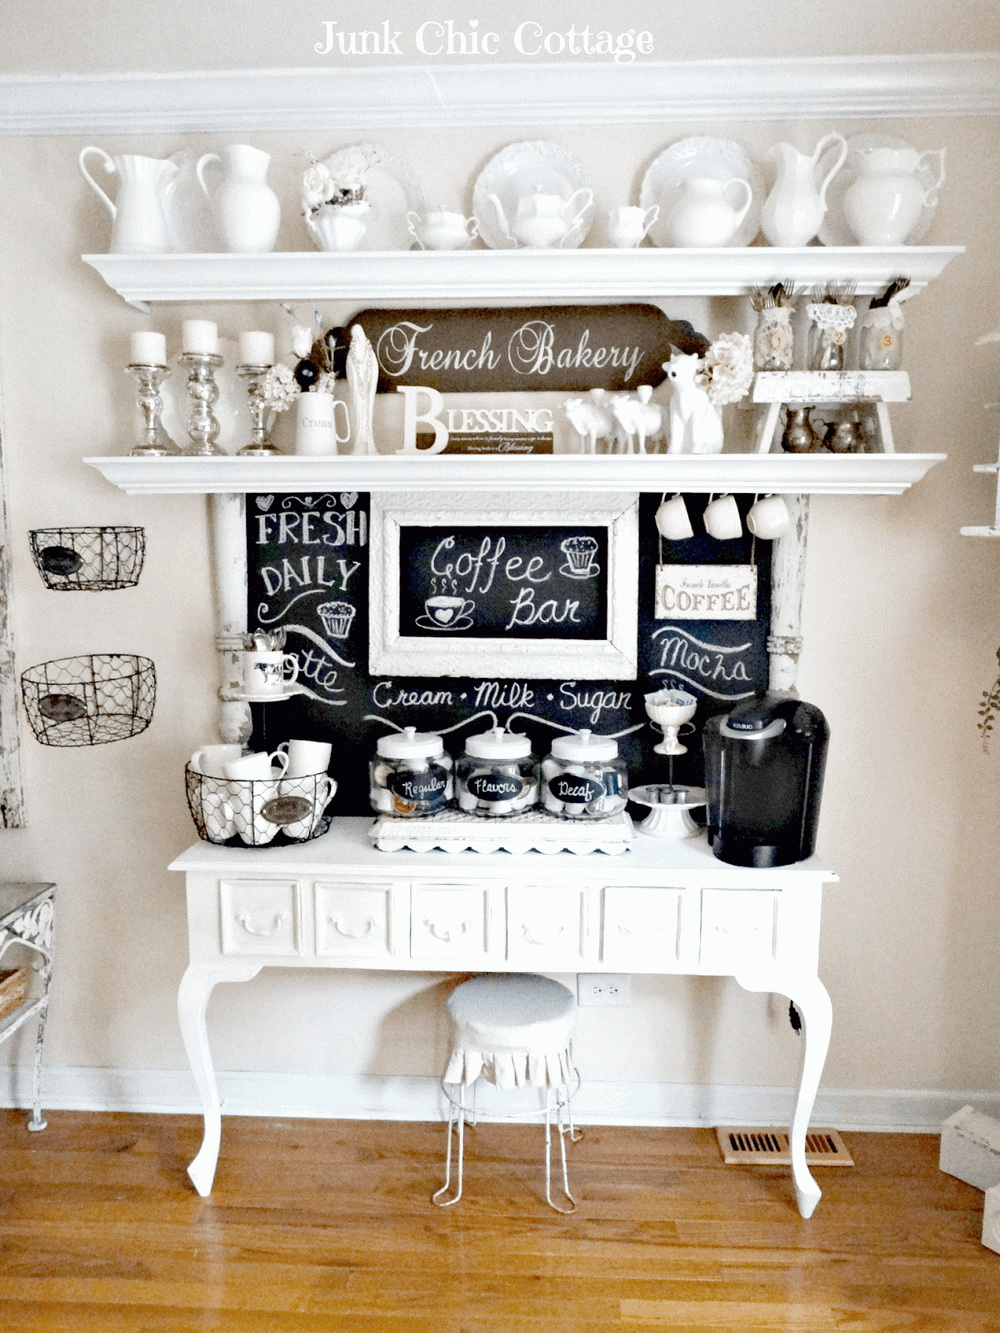 5.A BRIDE COFFEE BAR AT YOUR HOME